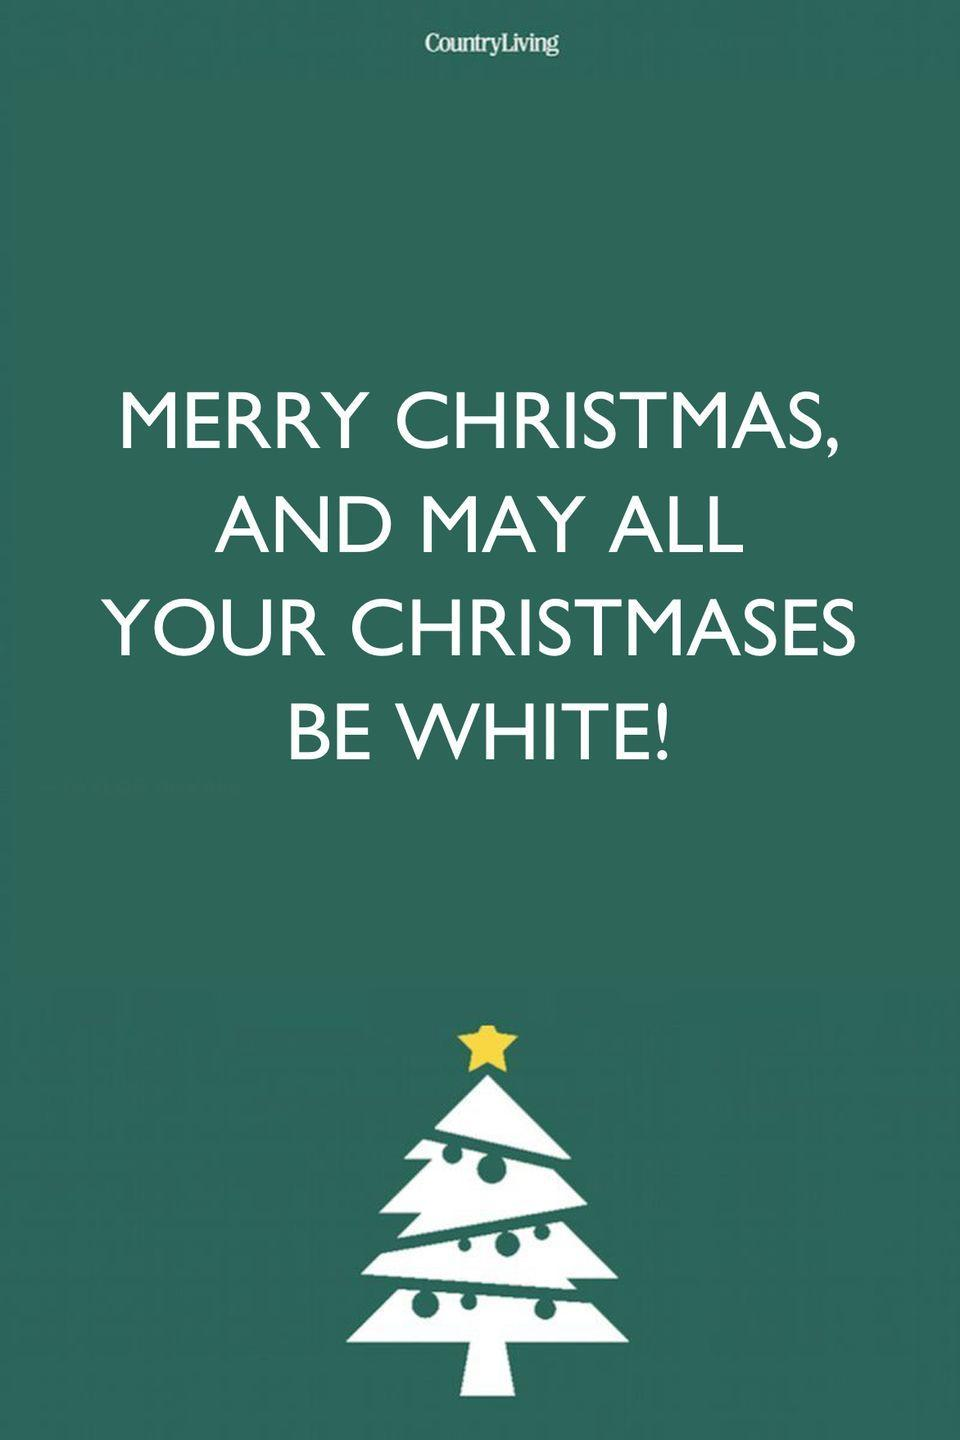 <p>Merry Christmas, and may all your Christmases be white! </p>